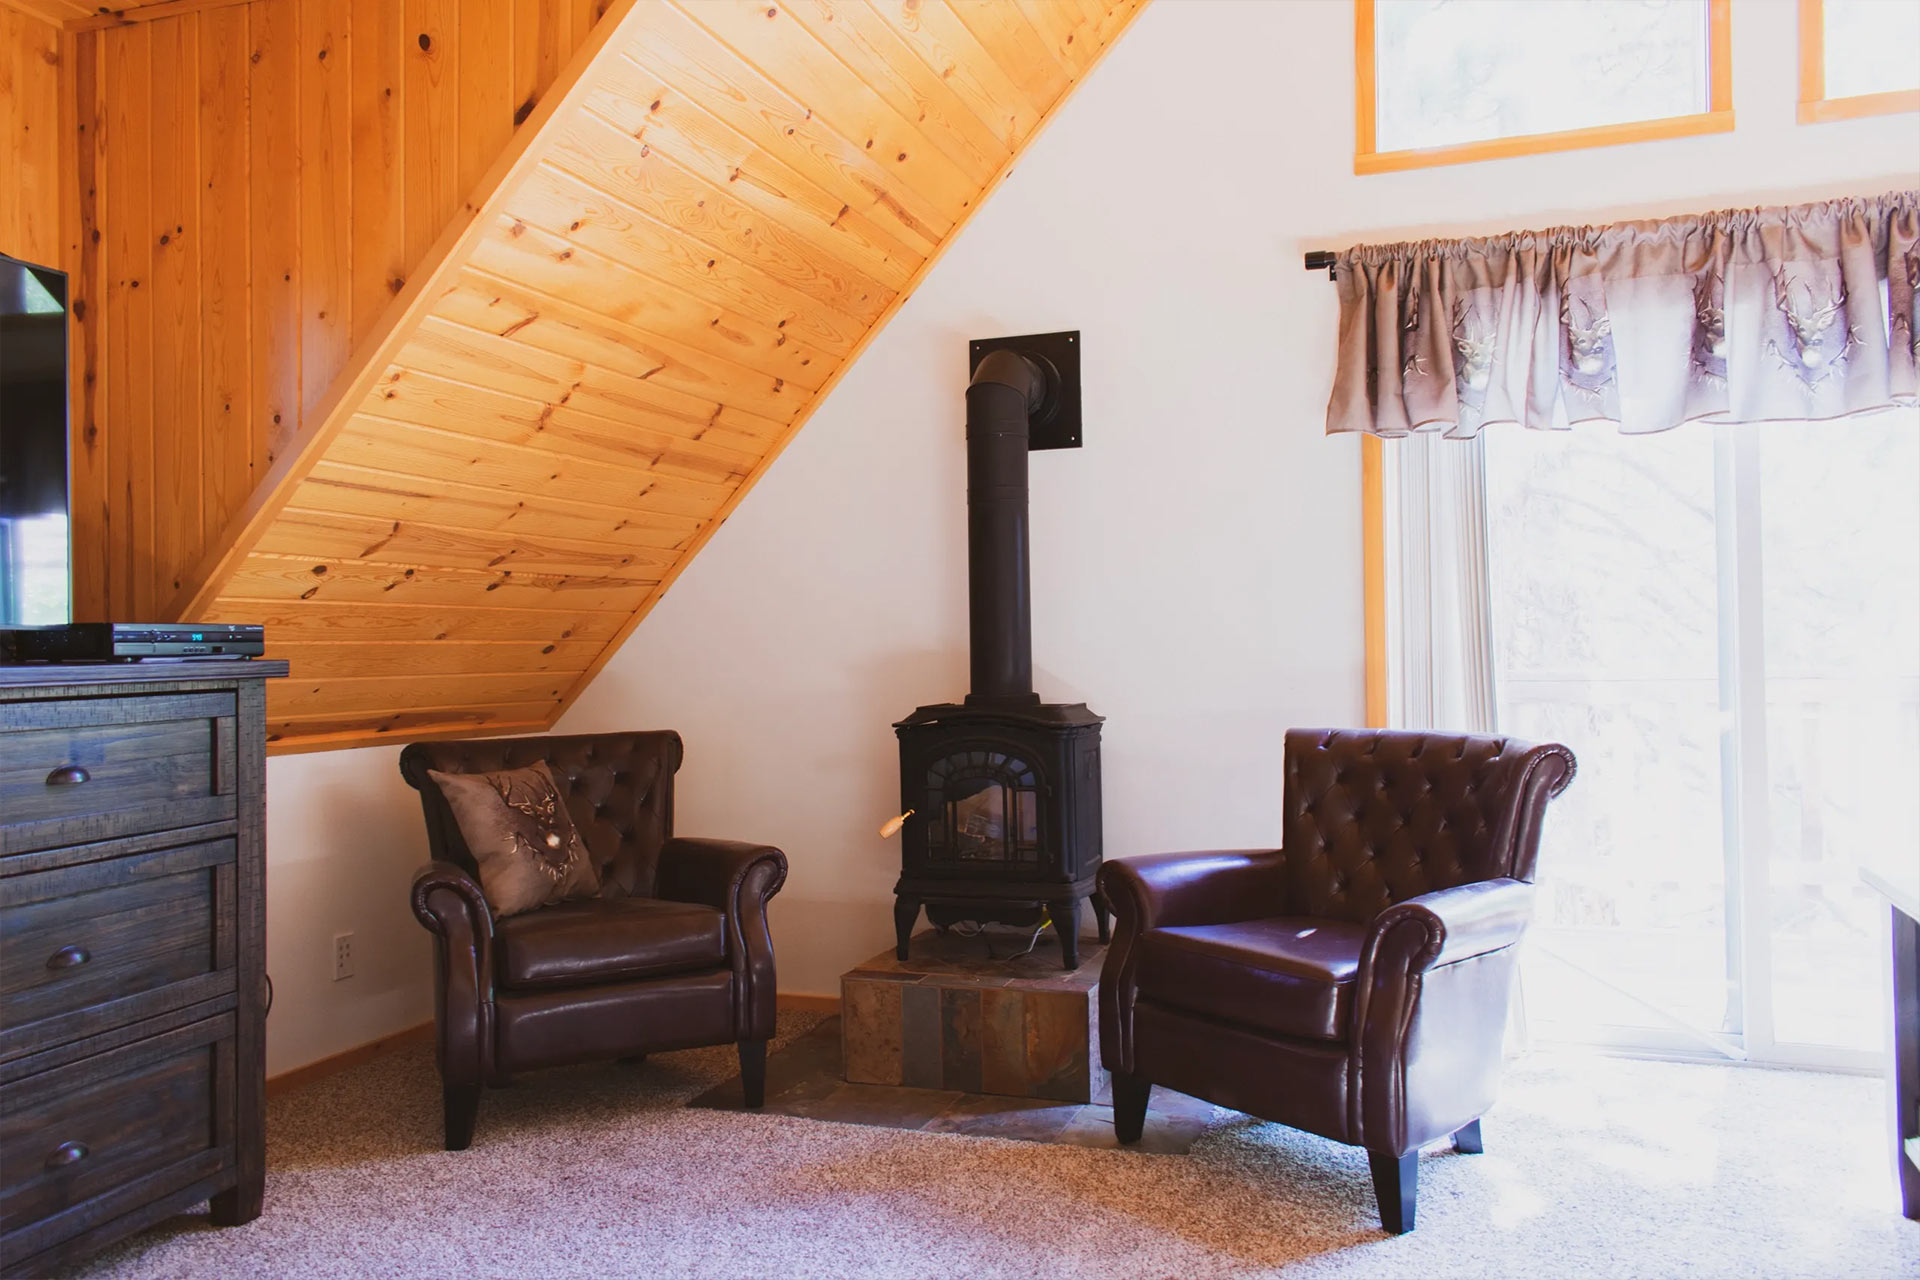 Master bedroom suite with cast iron stove at the residence